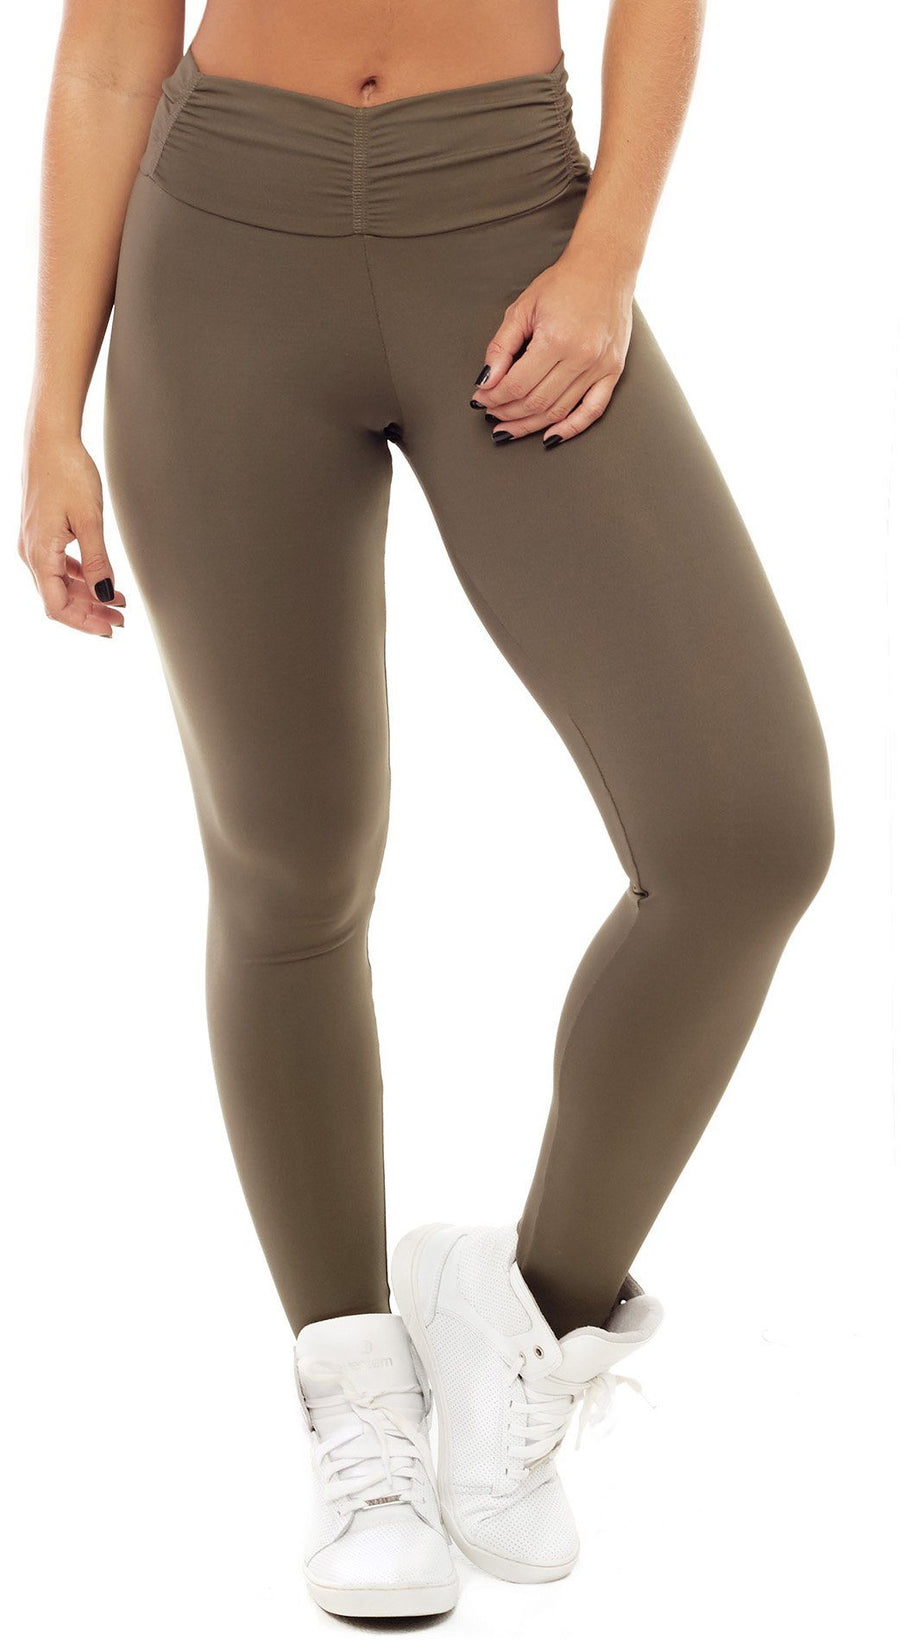 Brazilian Workout Legging - Booty Up Pockets Army Green